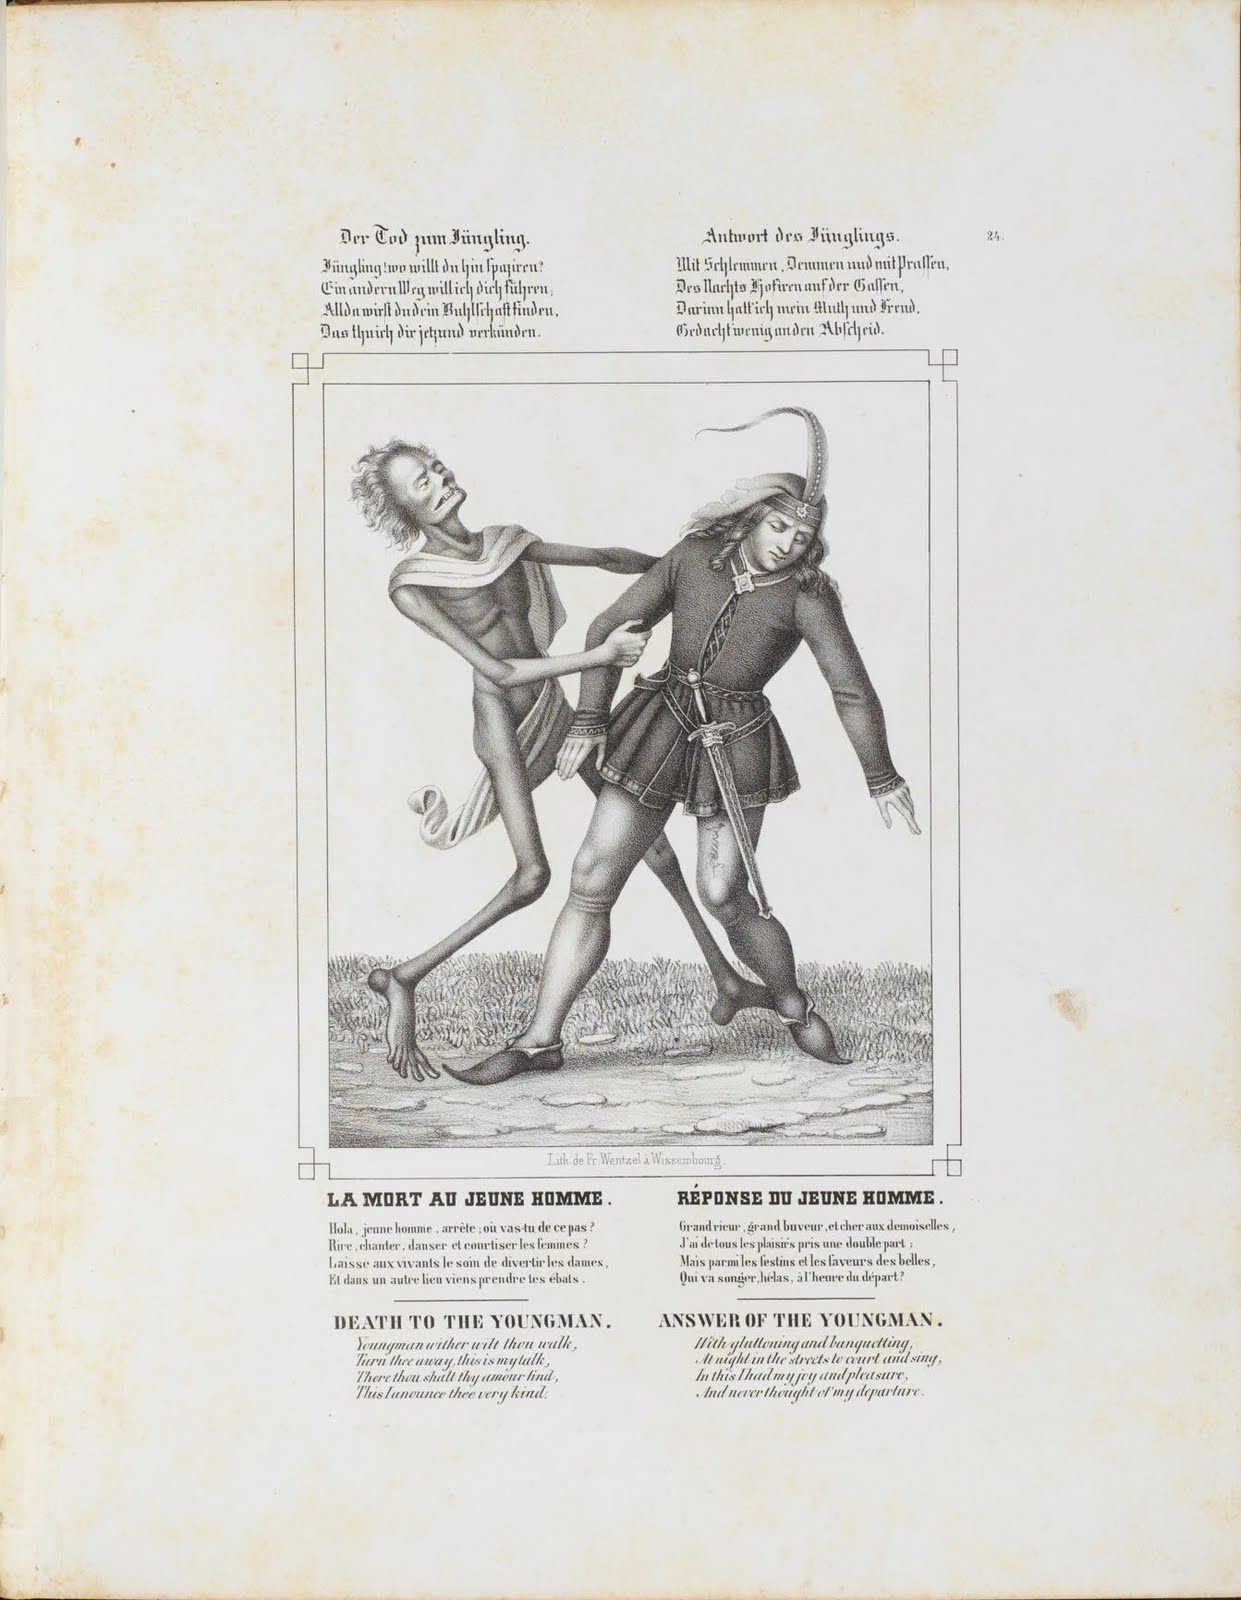 lithograph of danse macabre figure taking young man to death